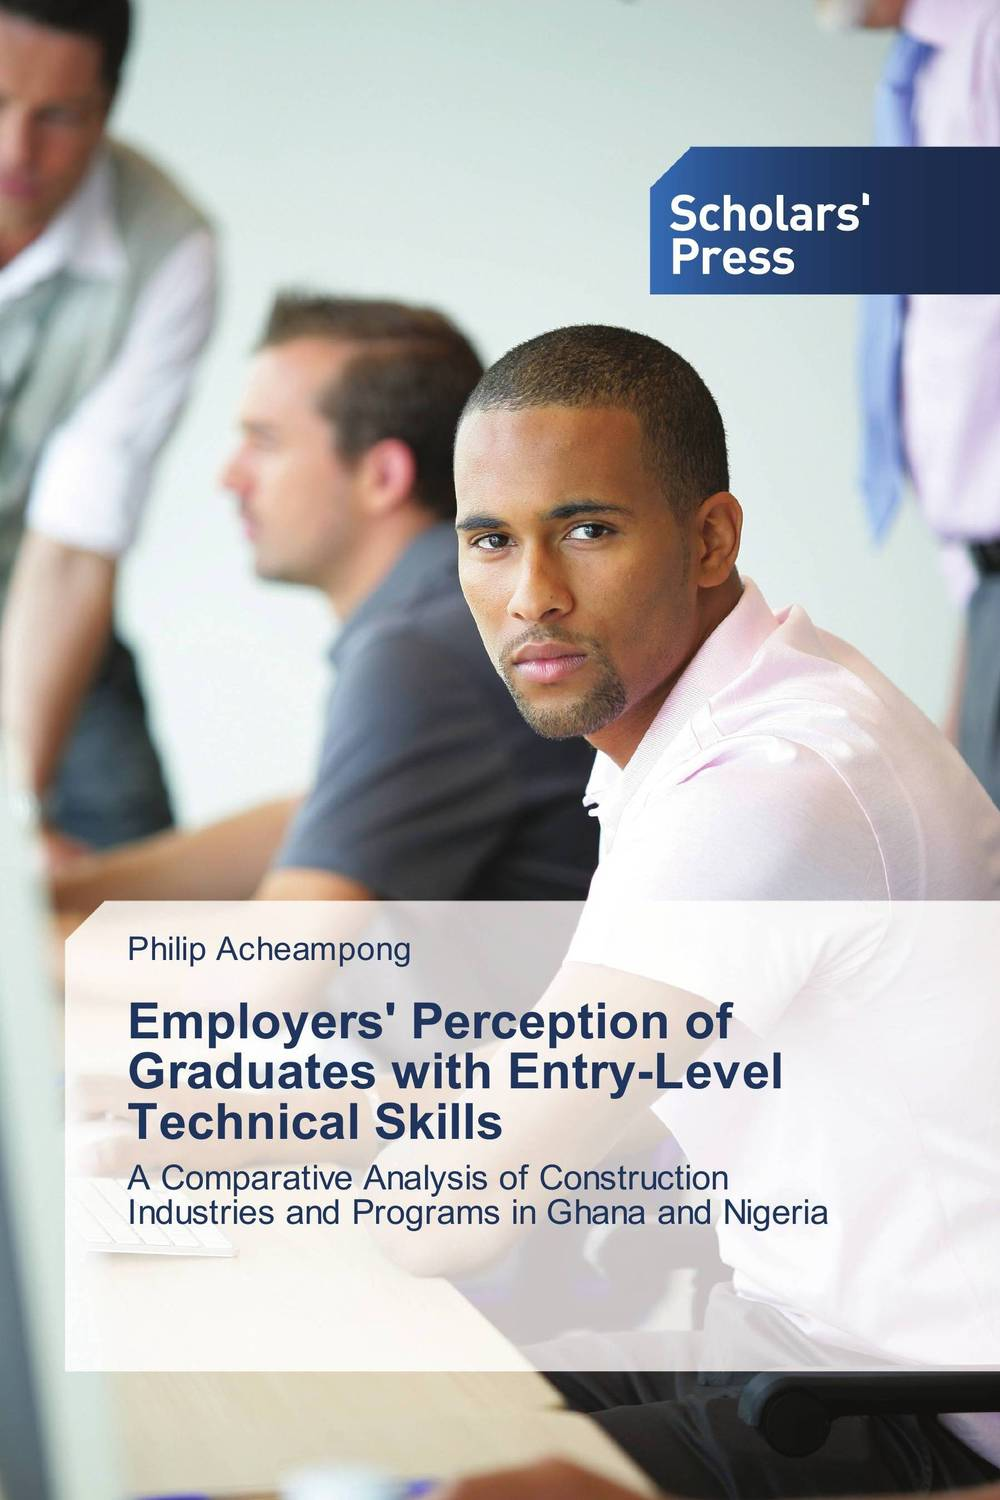 Employers' Perception of Graduates with Entry-Level Technical Skills